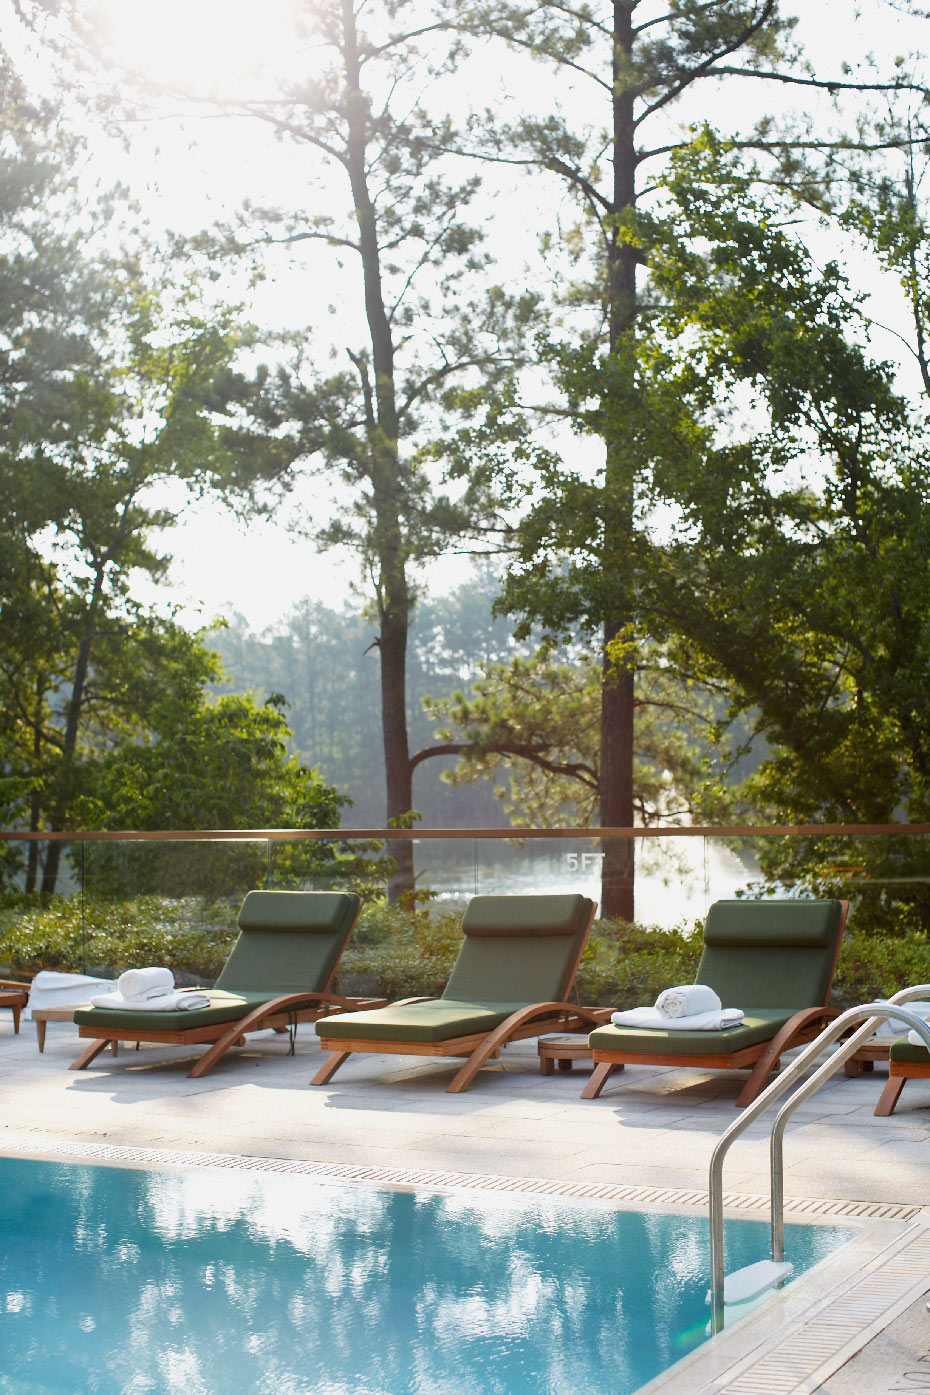 Stacey Van Berkel Photography I Pool with deck chairs I The Umstead Hotel and Spa I Cary, North Carolina